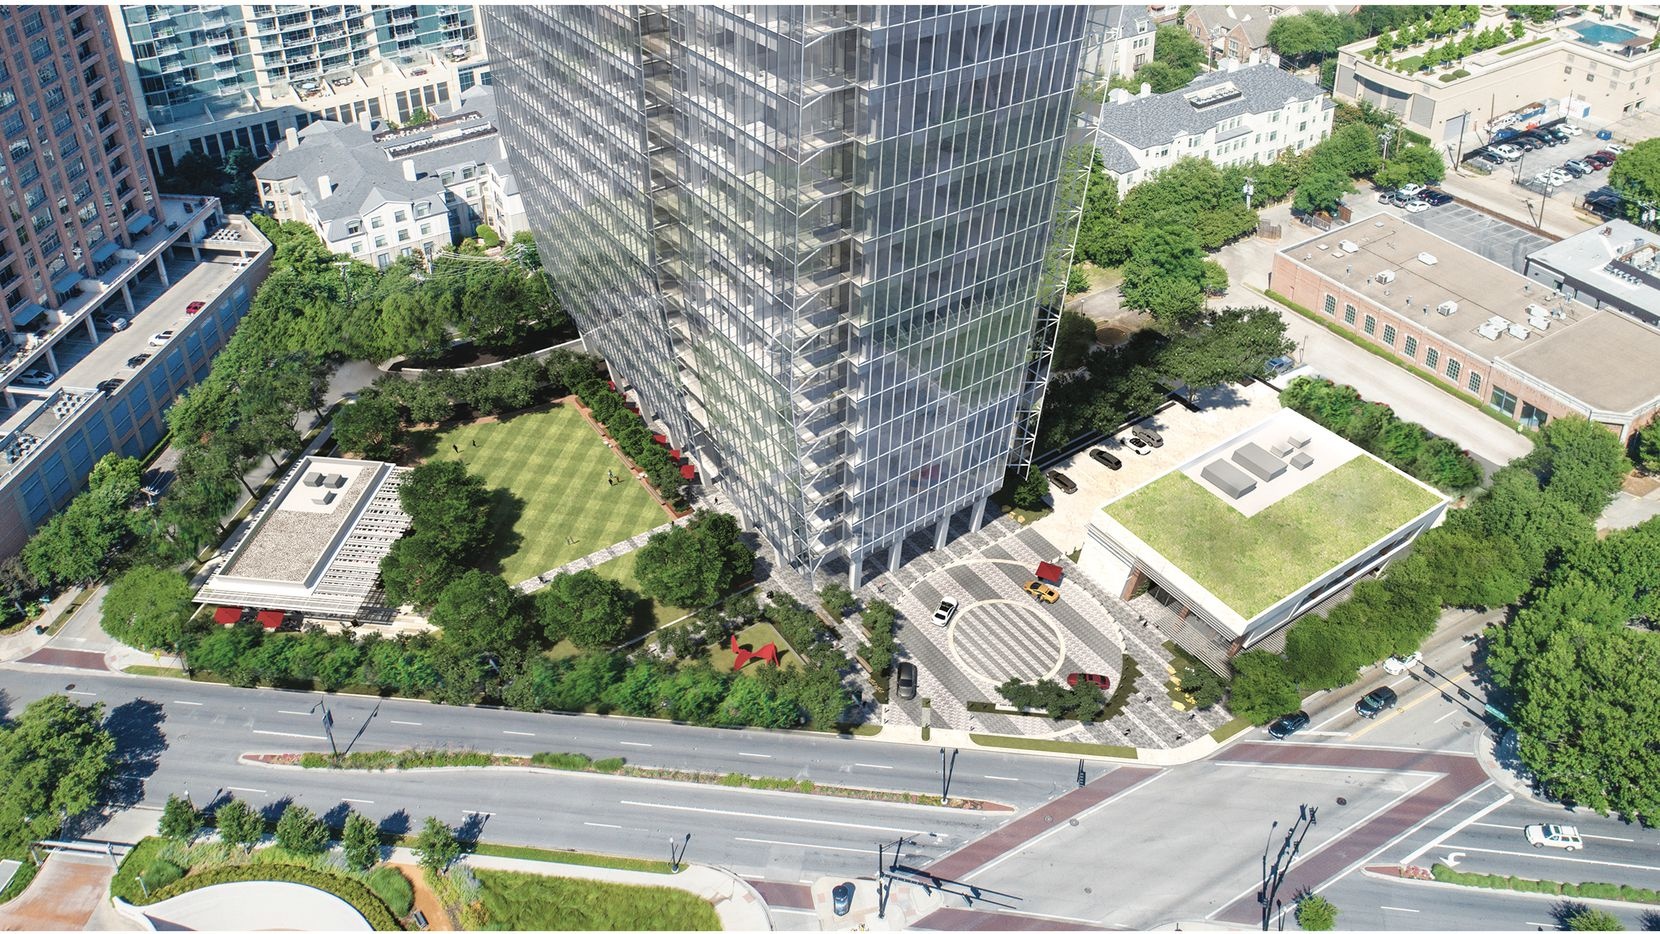 Granite Properties wants to build an office tower, a park and open space, and two restaurant buildings at the corner of Maple Avenue and Cedar Springs Road in Uptown.